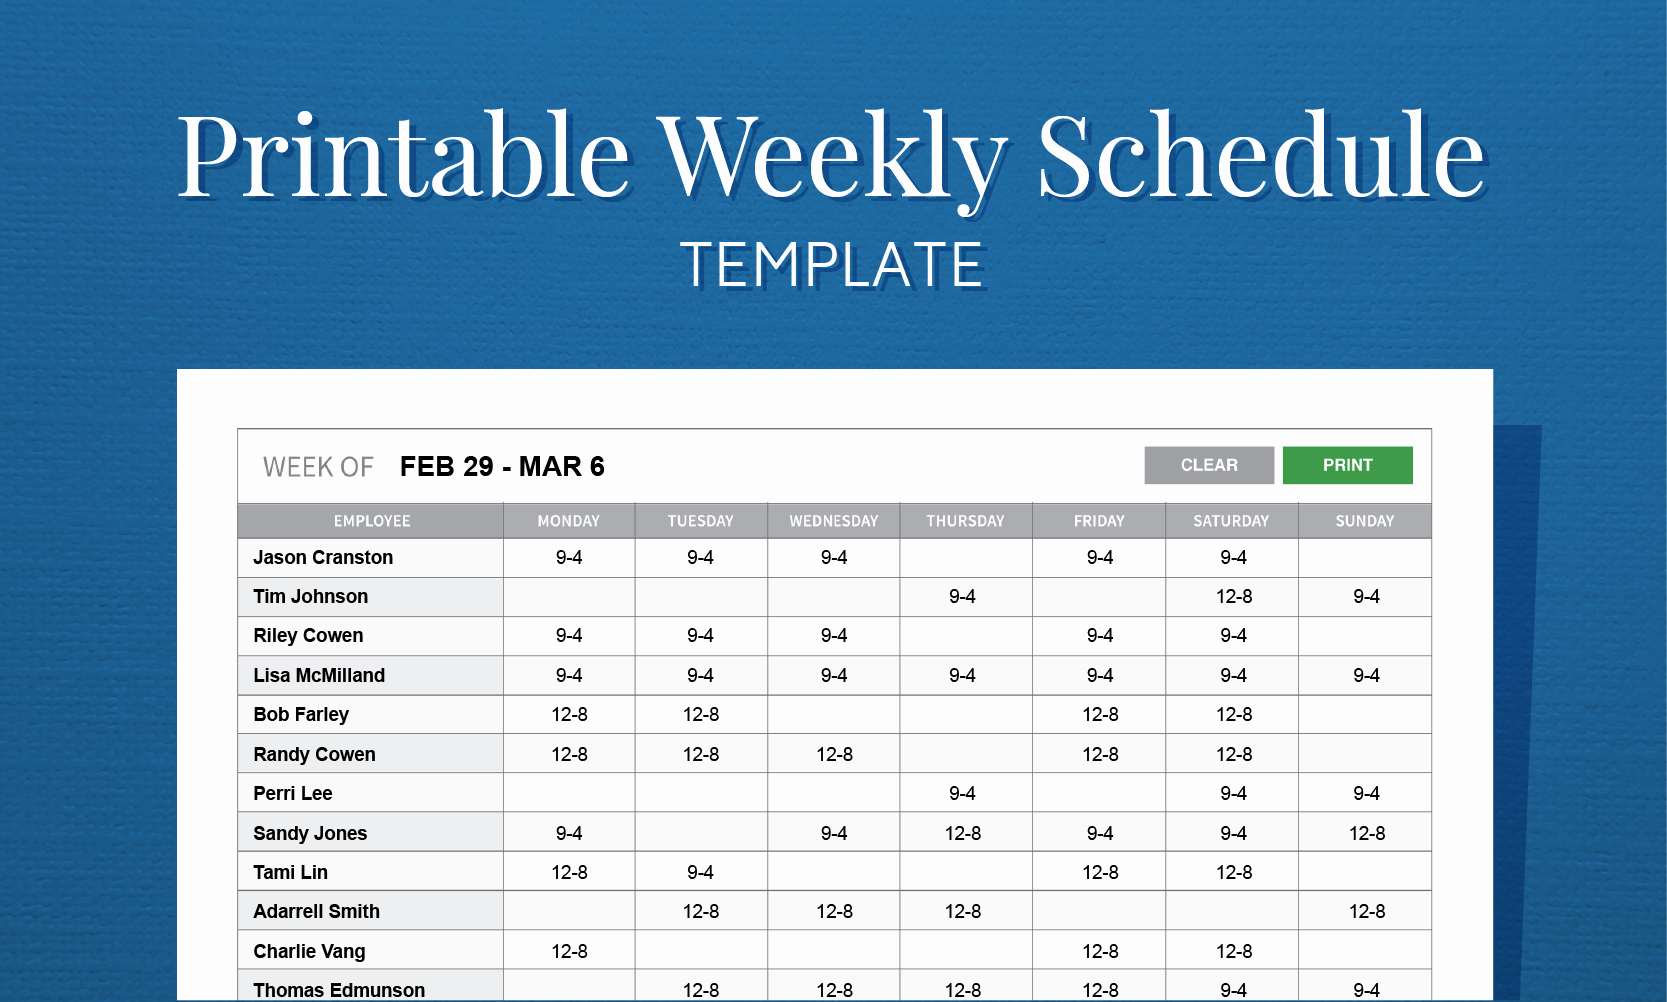 Employee Weekly Schedule Template Inspirational Free Printable Work Schedule Template for Employee